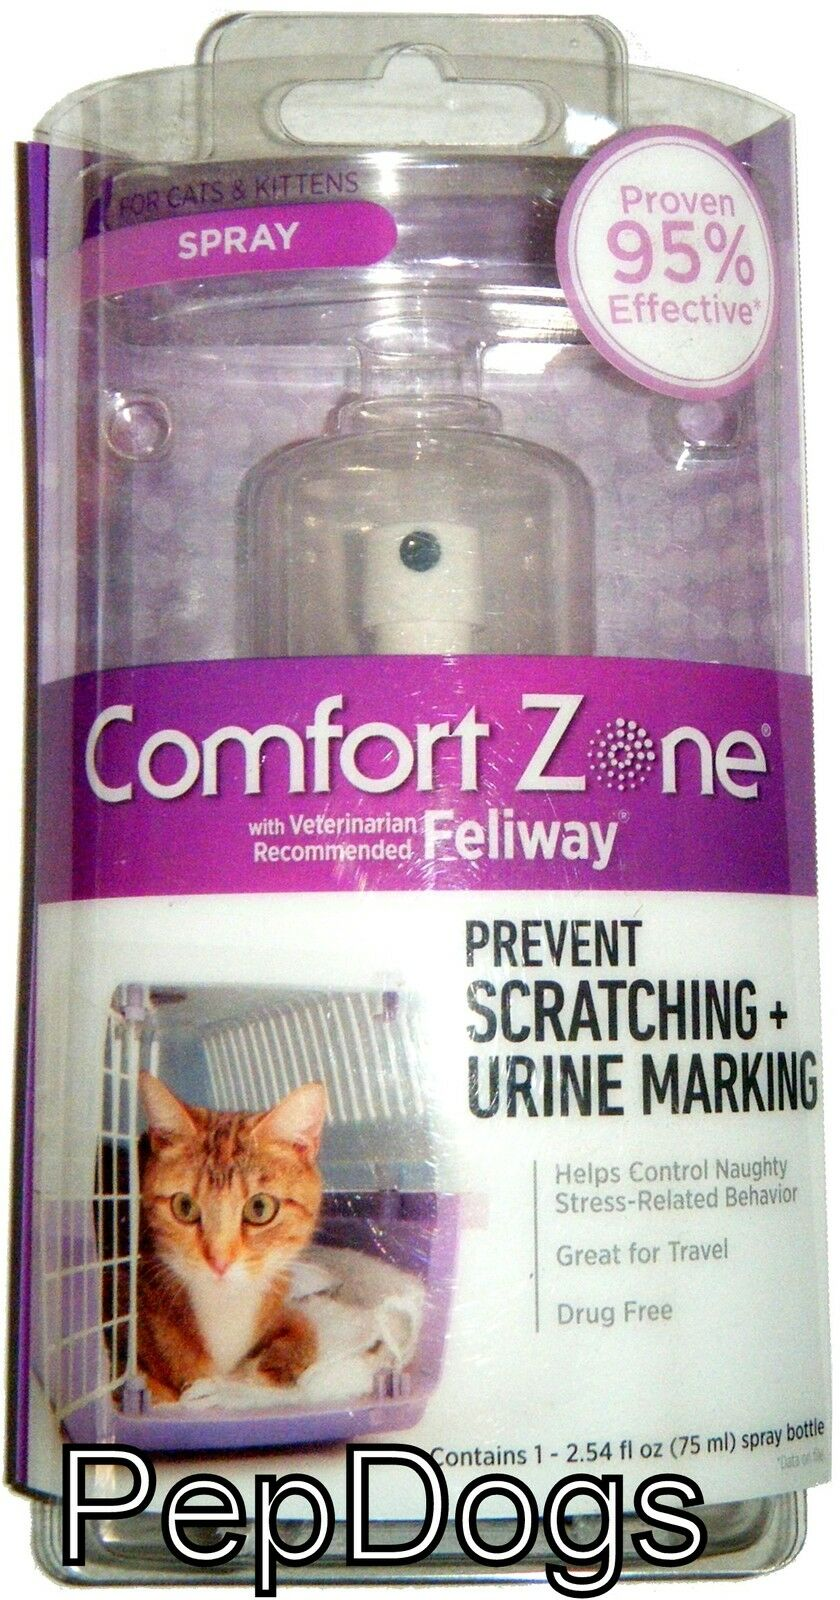 pack for feliway comfort refill diffuser cats healthypets classic comforter com ml zone